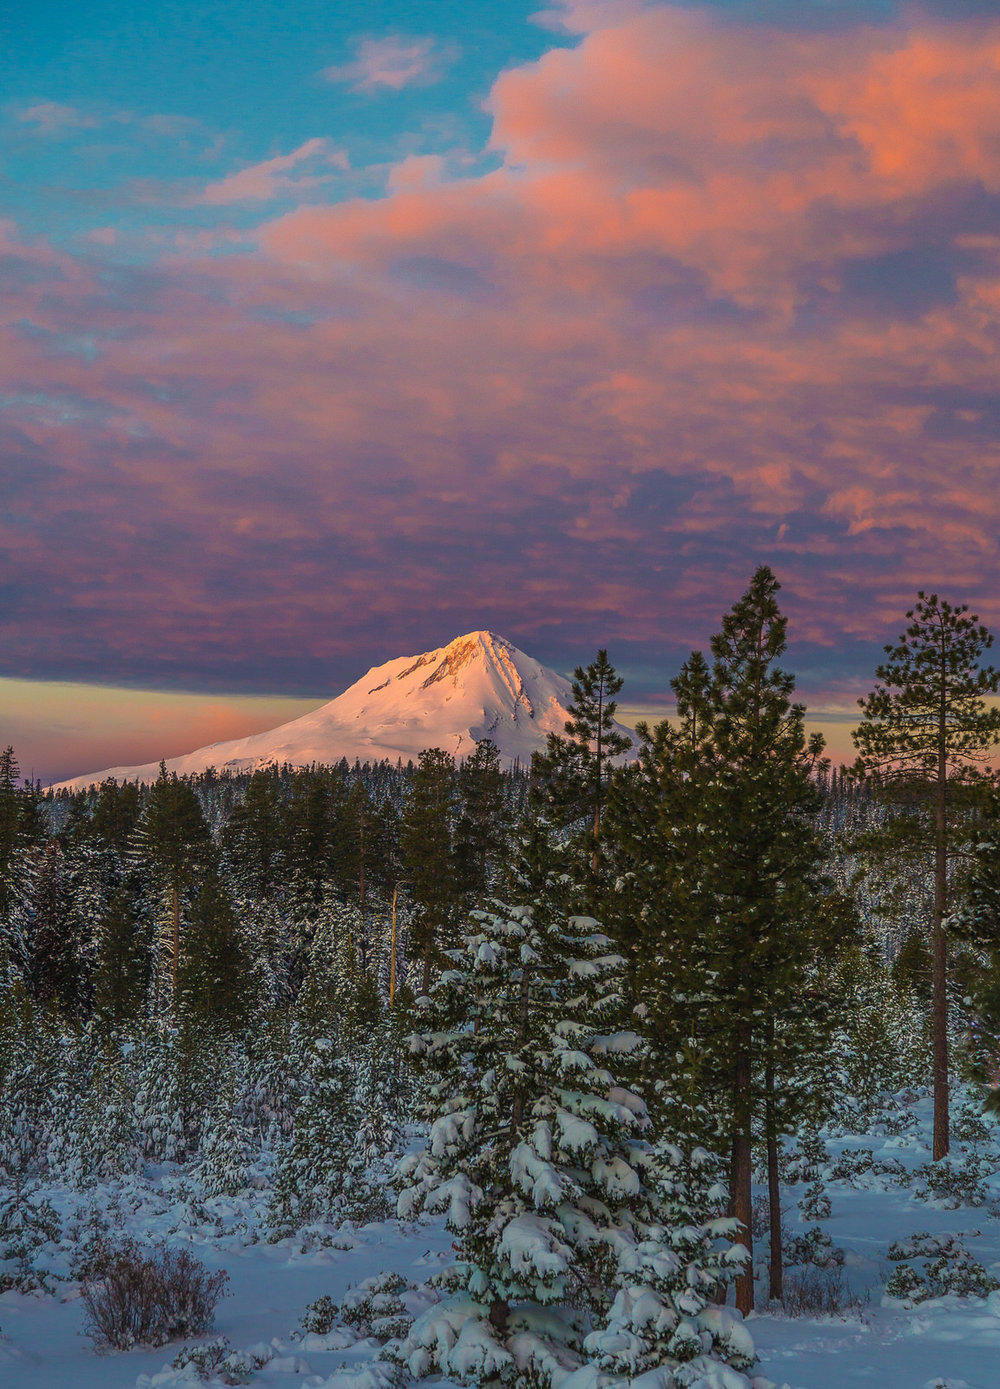 Sunset over Mt. Hood from Fivemile Butte fire lookout